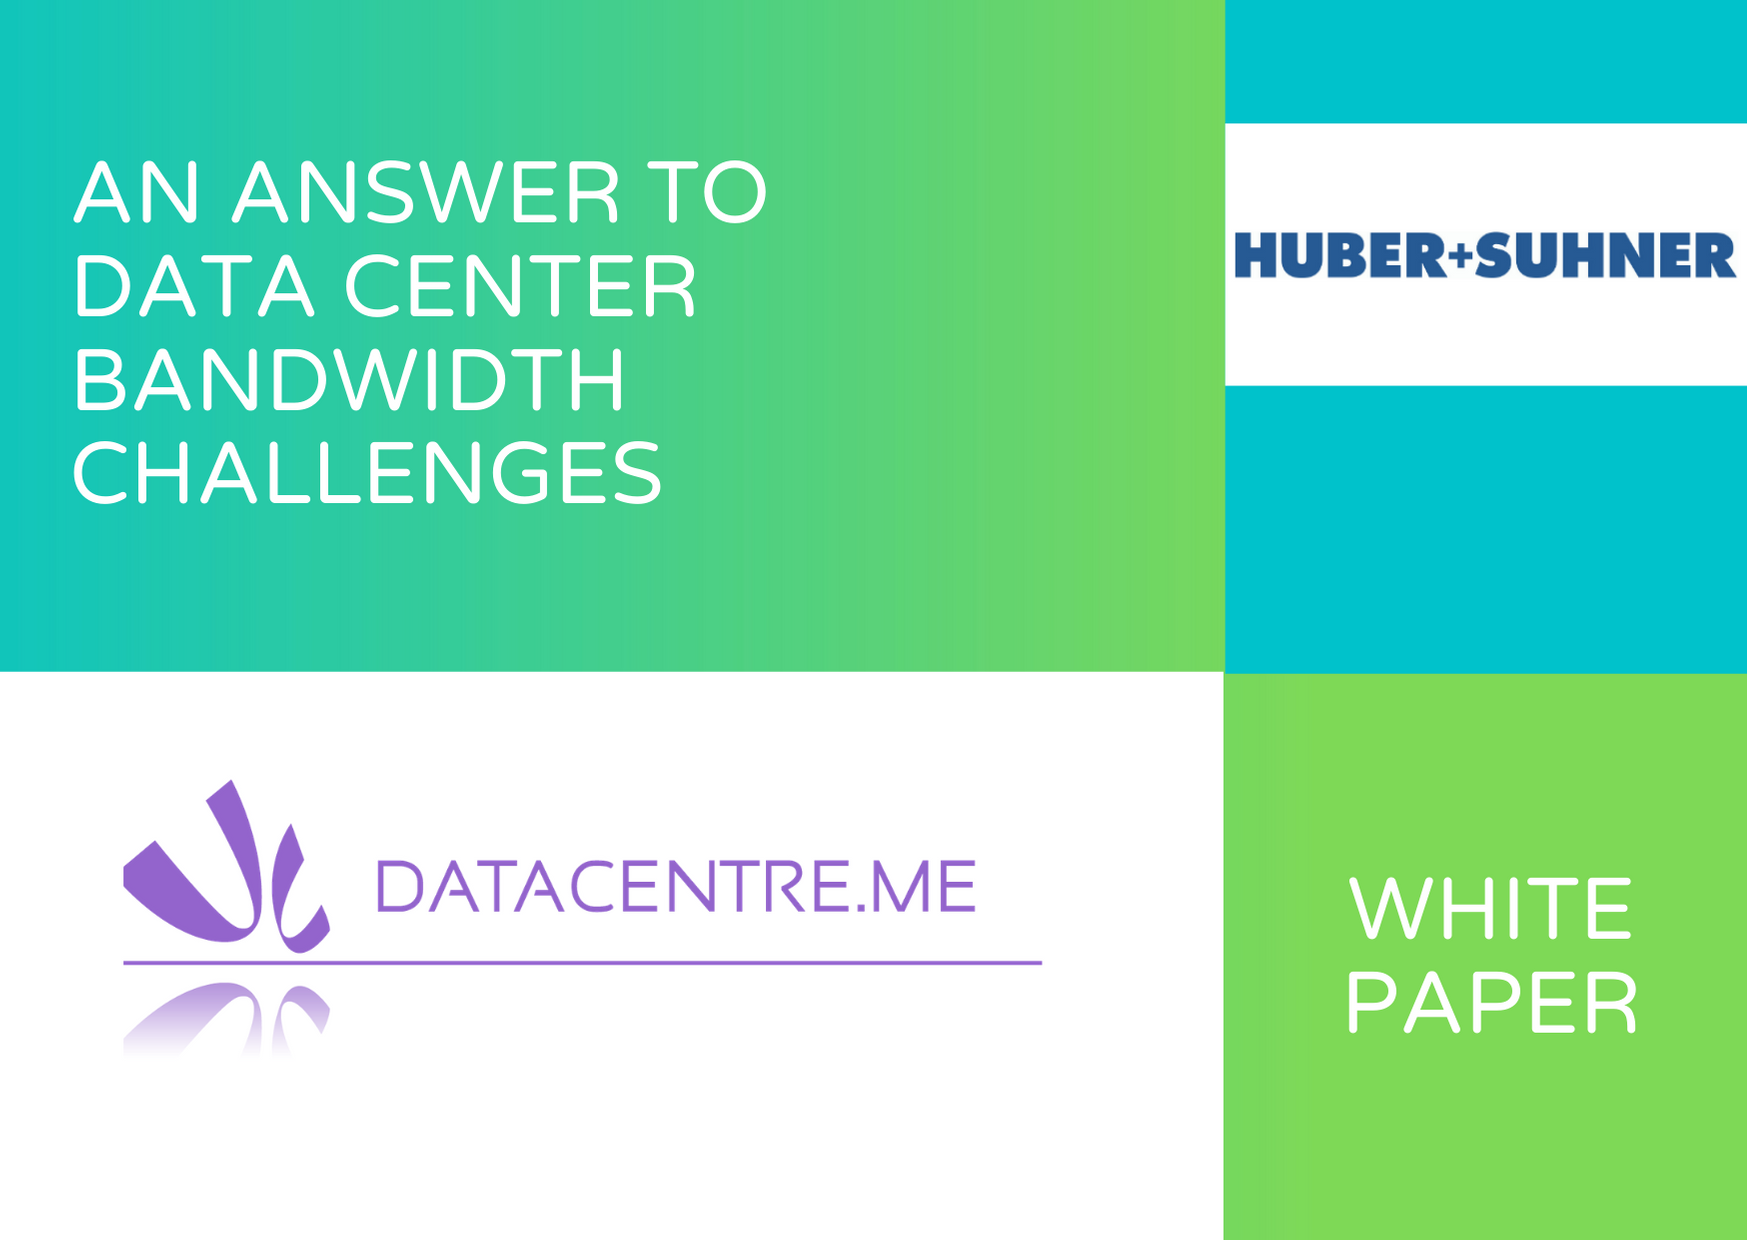 An Answer to Data Center Bandwidth Challenges – White Paper from HUBER+SUHNER